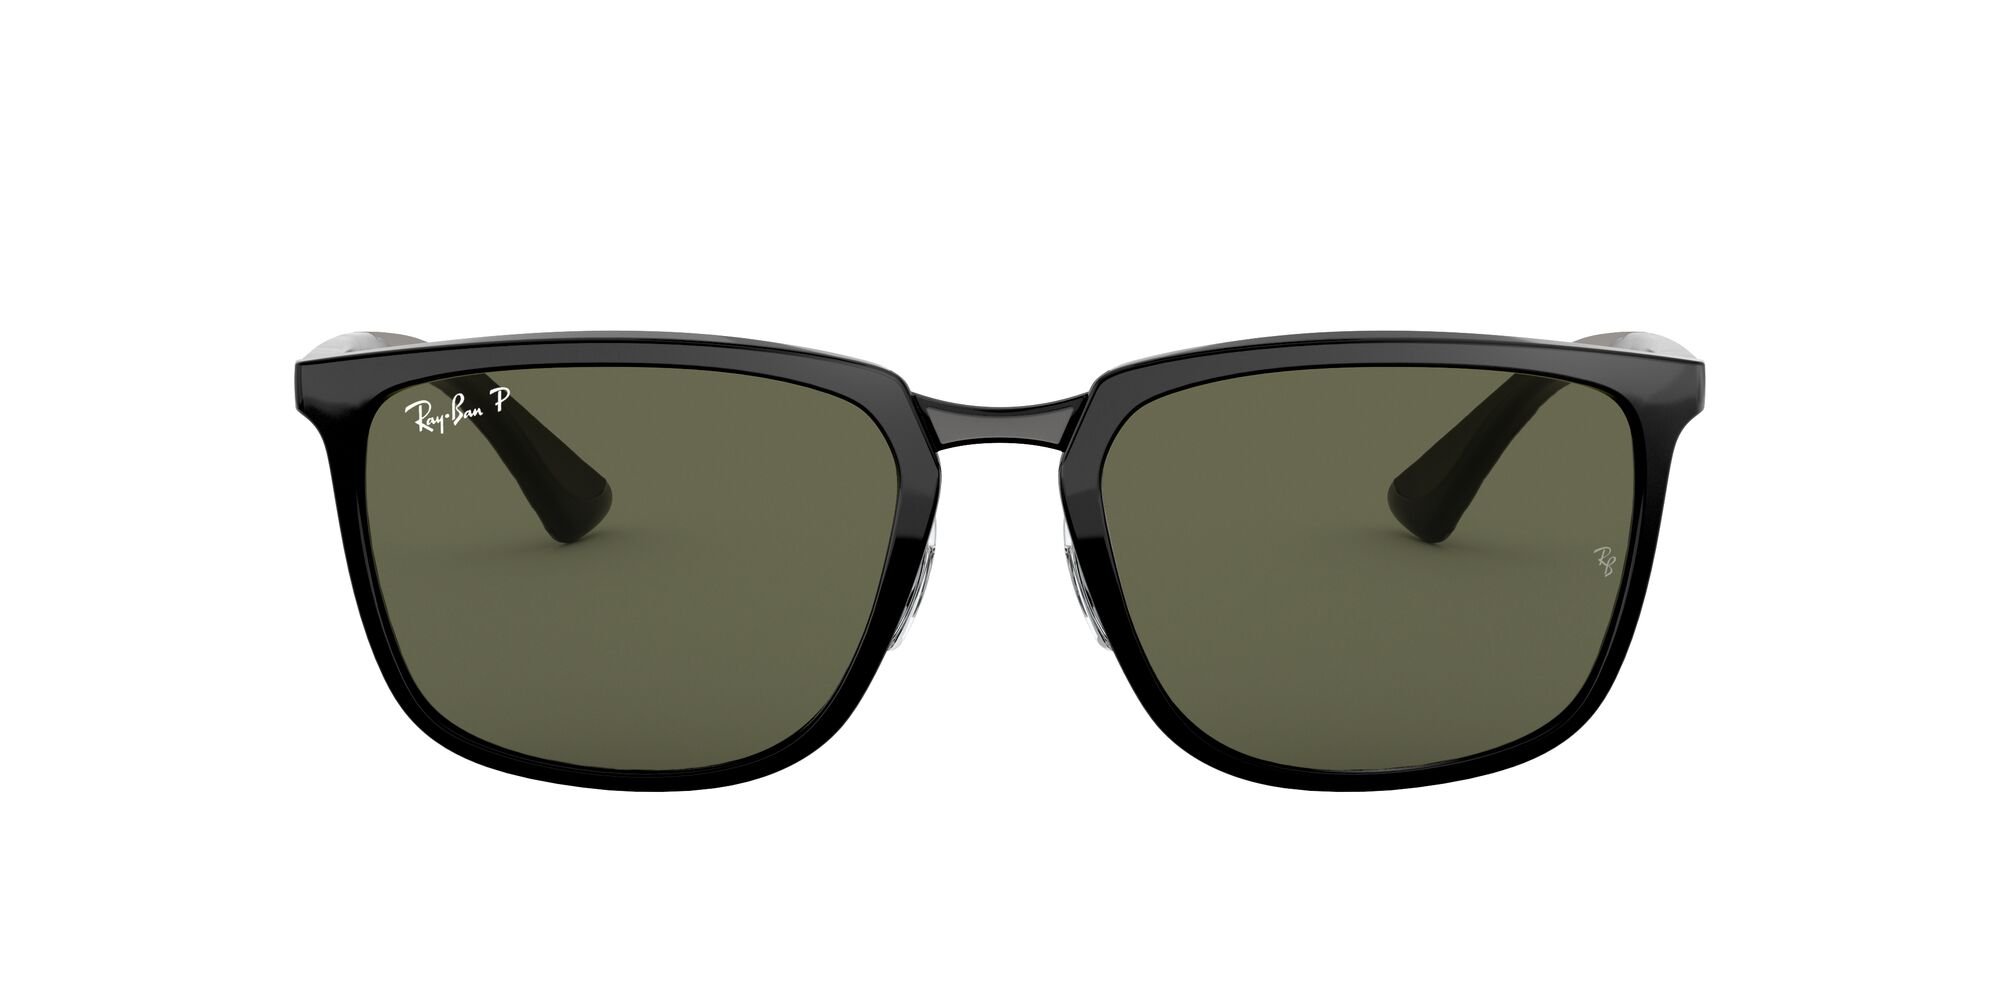 Front Ray-Ban Ray-Ban 0RB4303 601/9A 57/19 Zwart/Groen